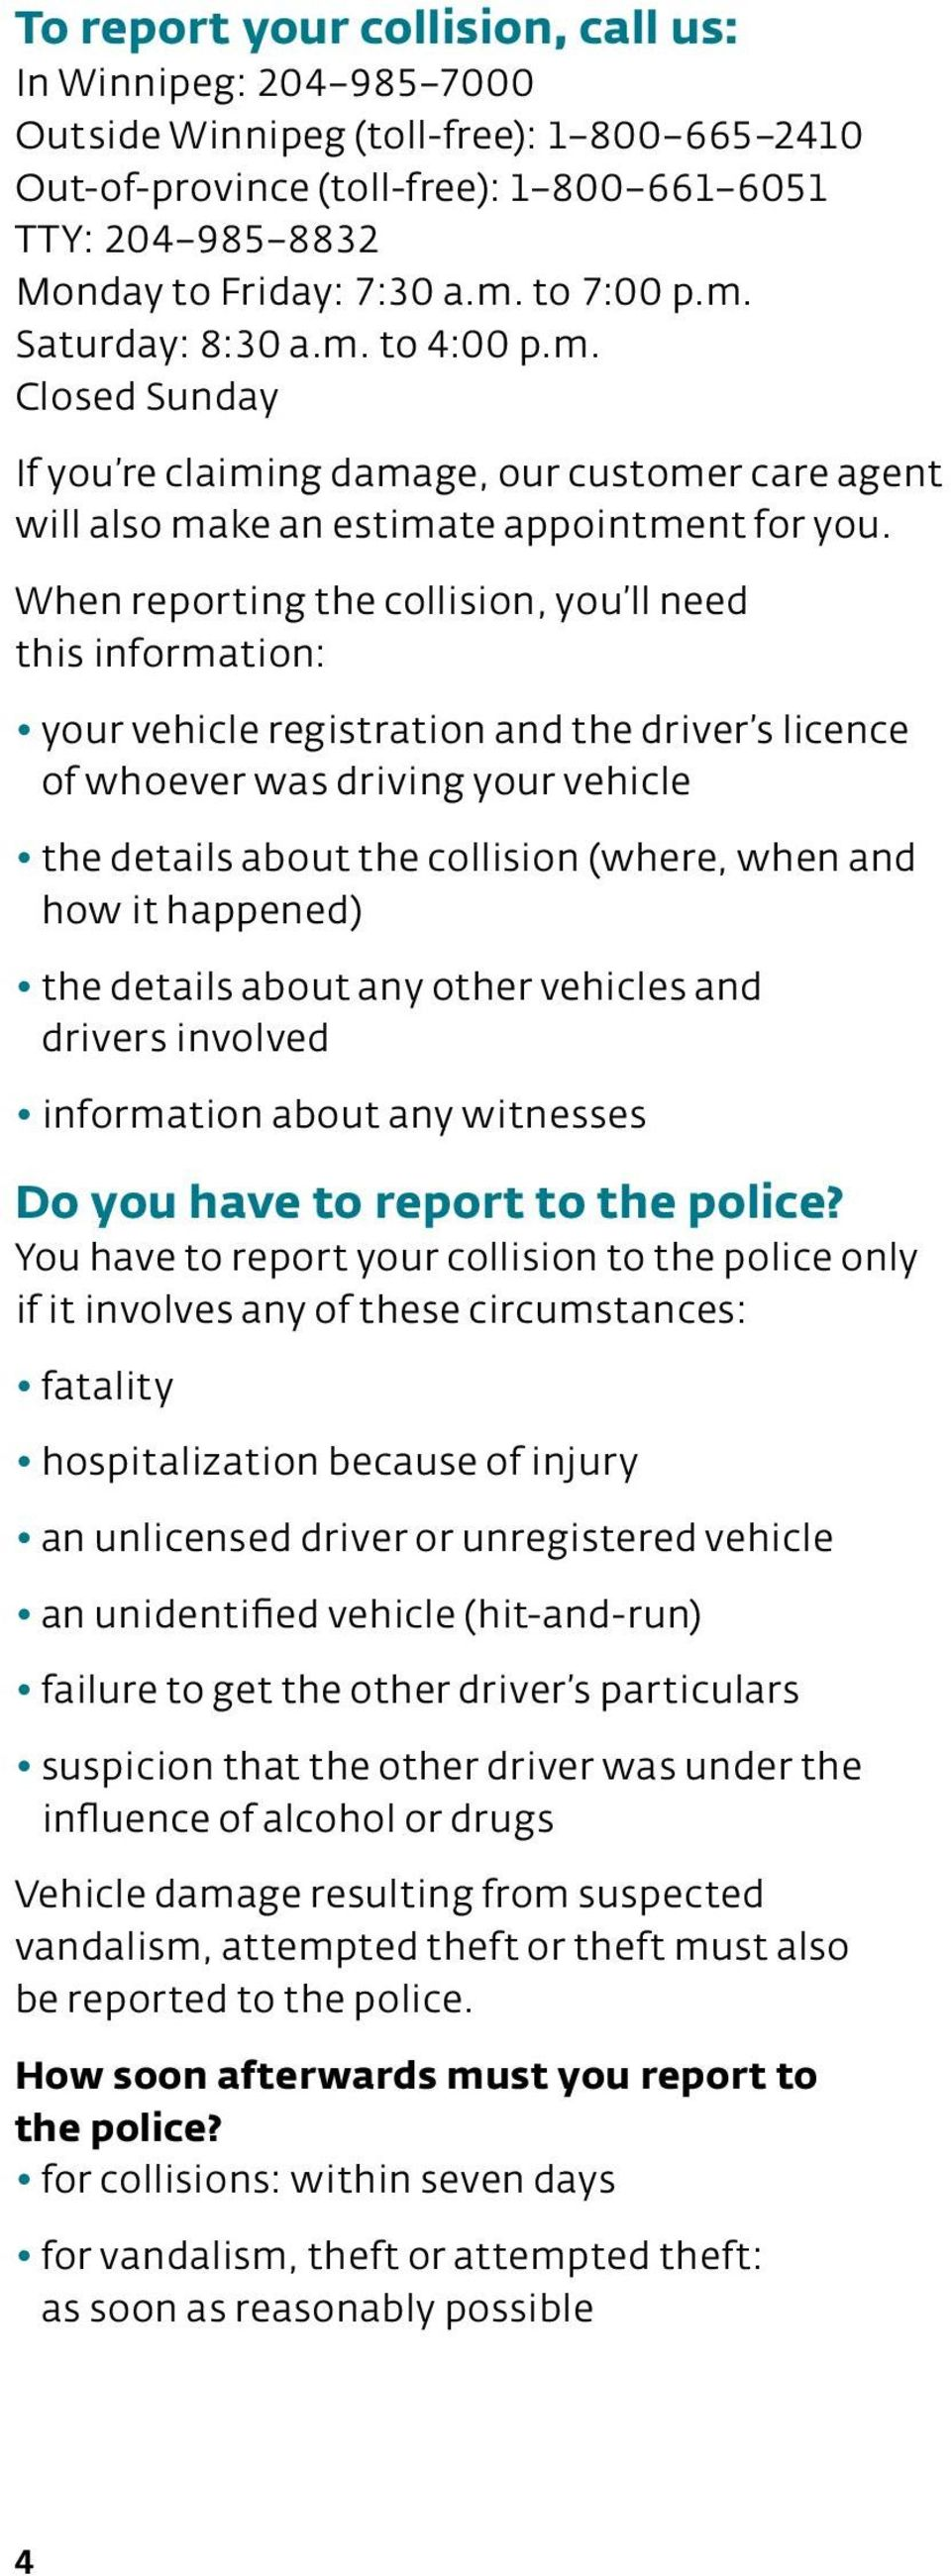 When reporting the collision, you ll need this information: your vehicle registration and the driver s licence of whoever was driving your vehicle the details about the collision (where, when and how